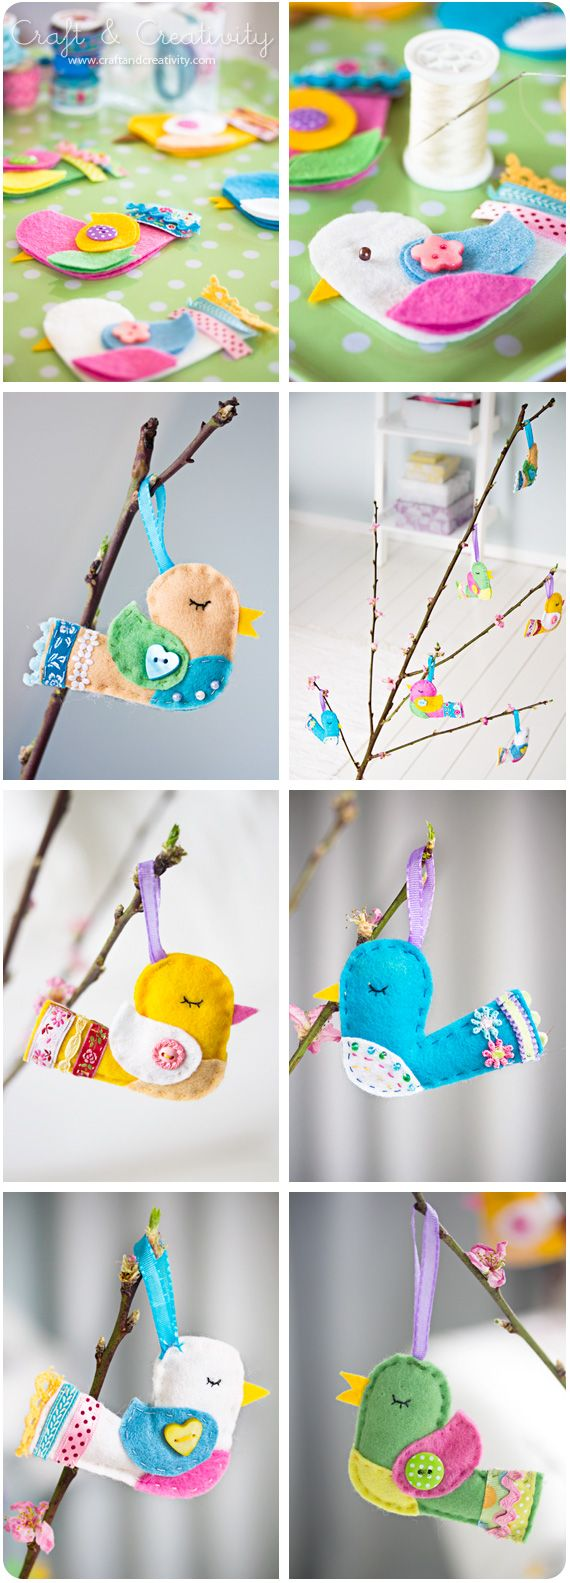 Stuffed felt colorful birds. Choose colors & the lavish details for your birds. Display on a branch/tree, add to napkin rings for easter dinner, make a mobile of them, etc. there are many possibilities.